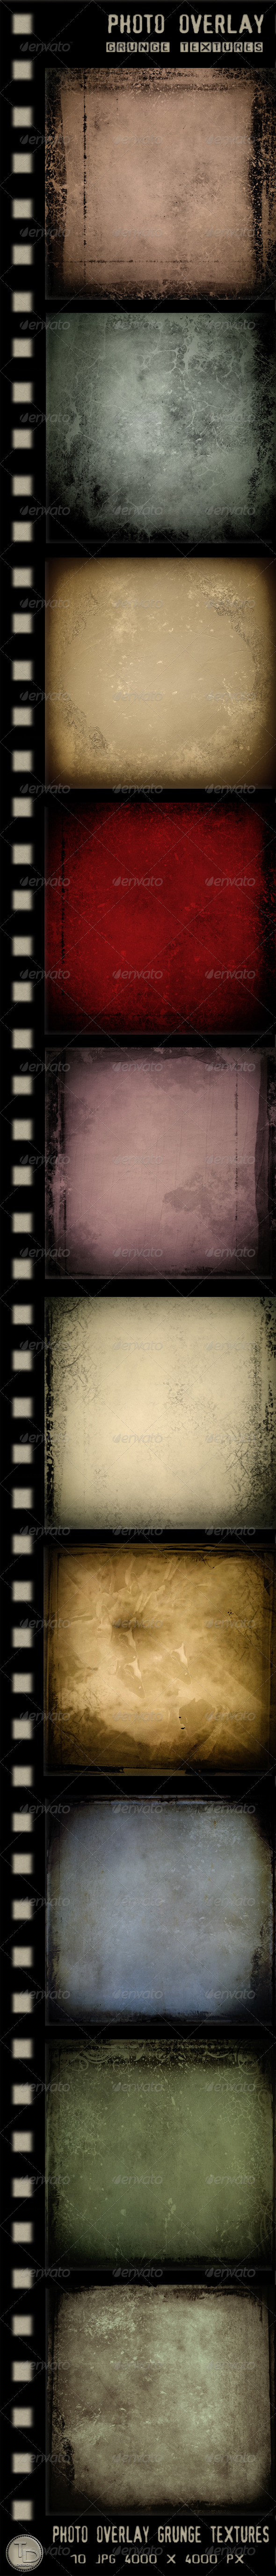 Photo Overlay Grunge Textures - Industrial / Grunge Textures